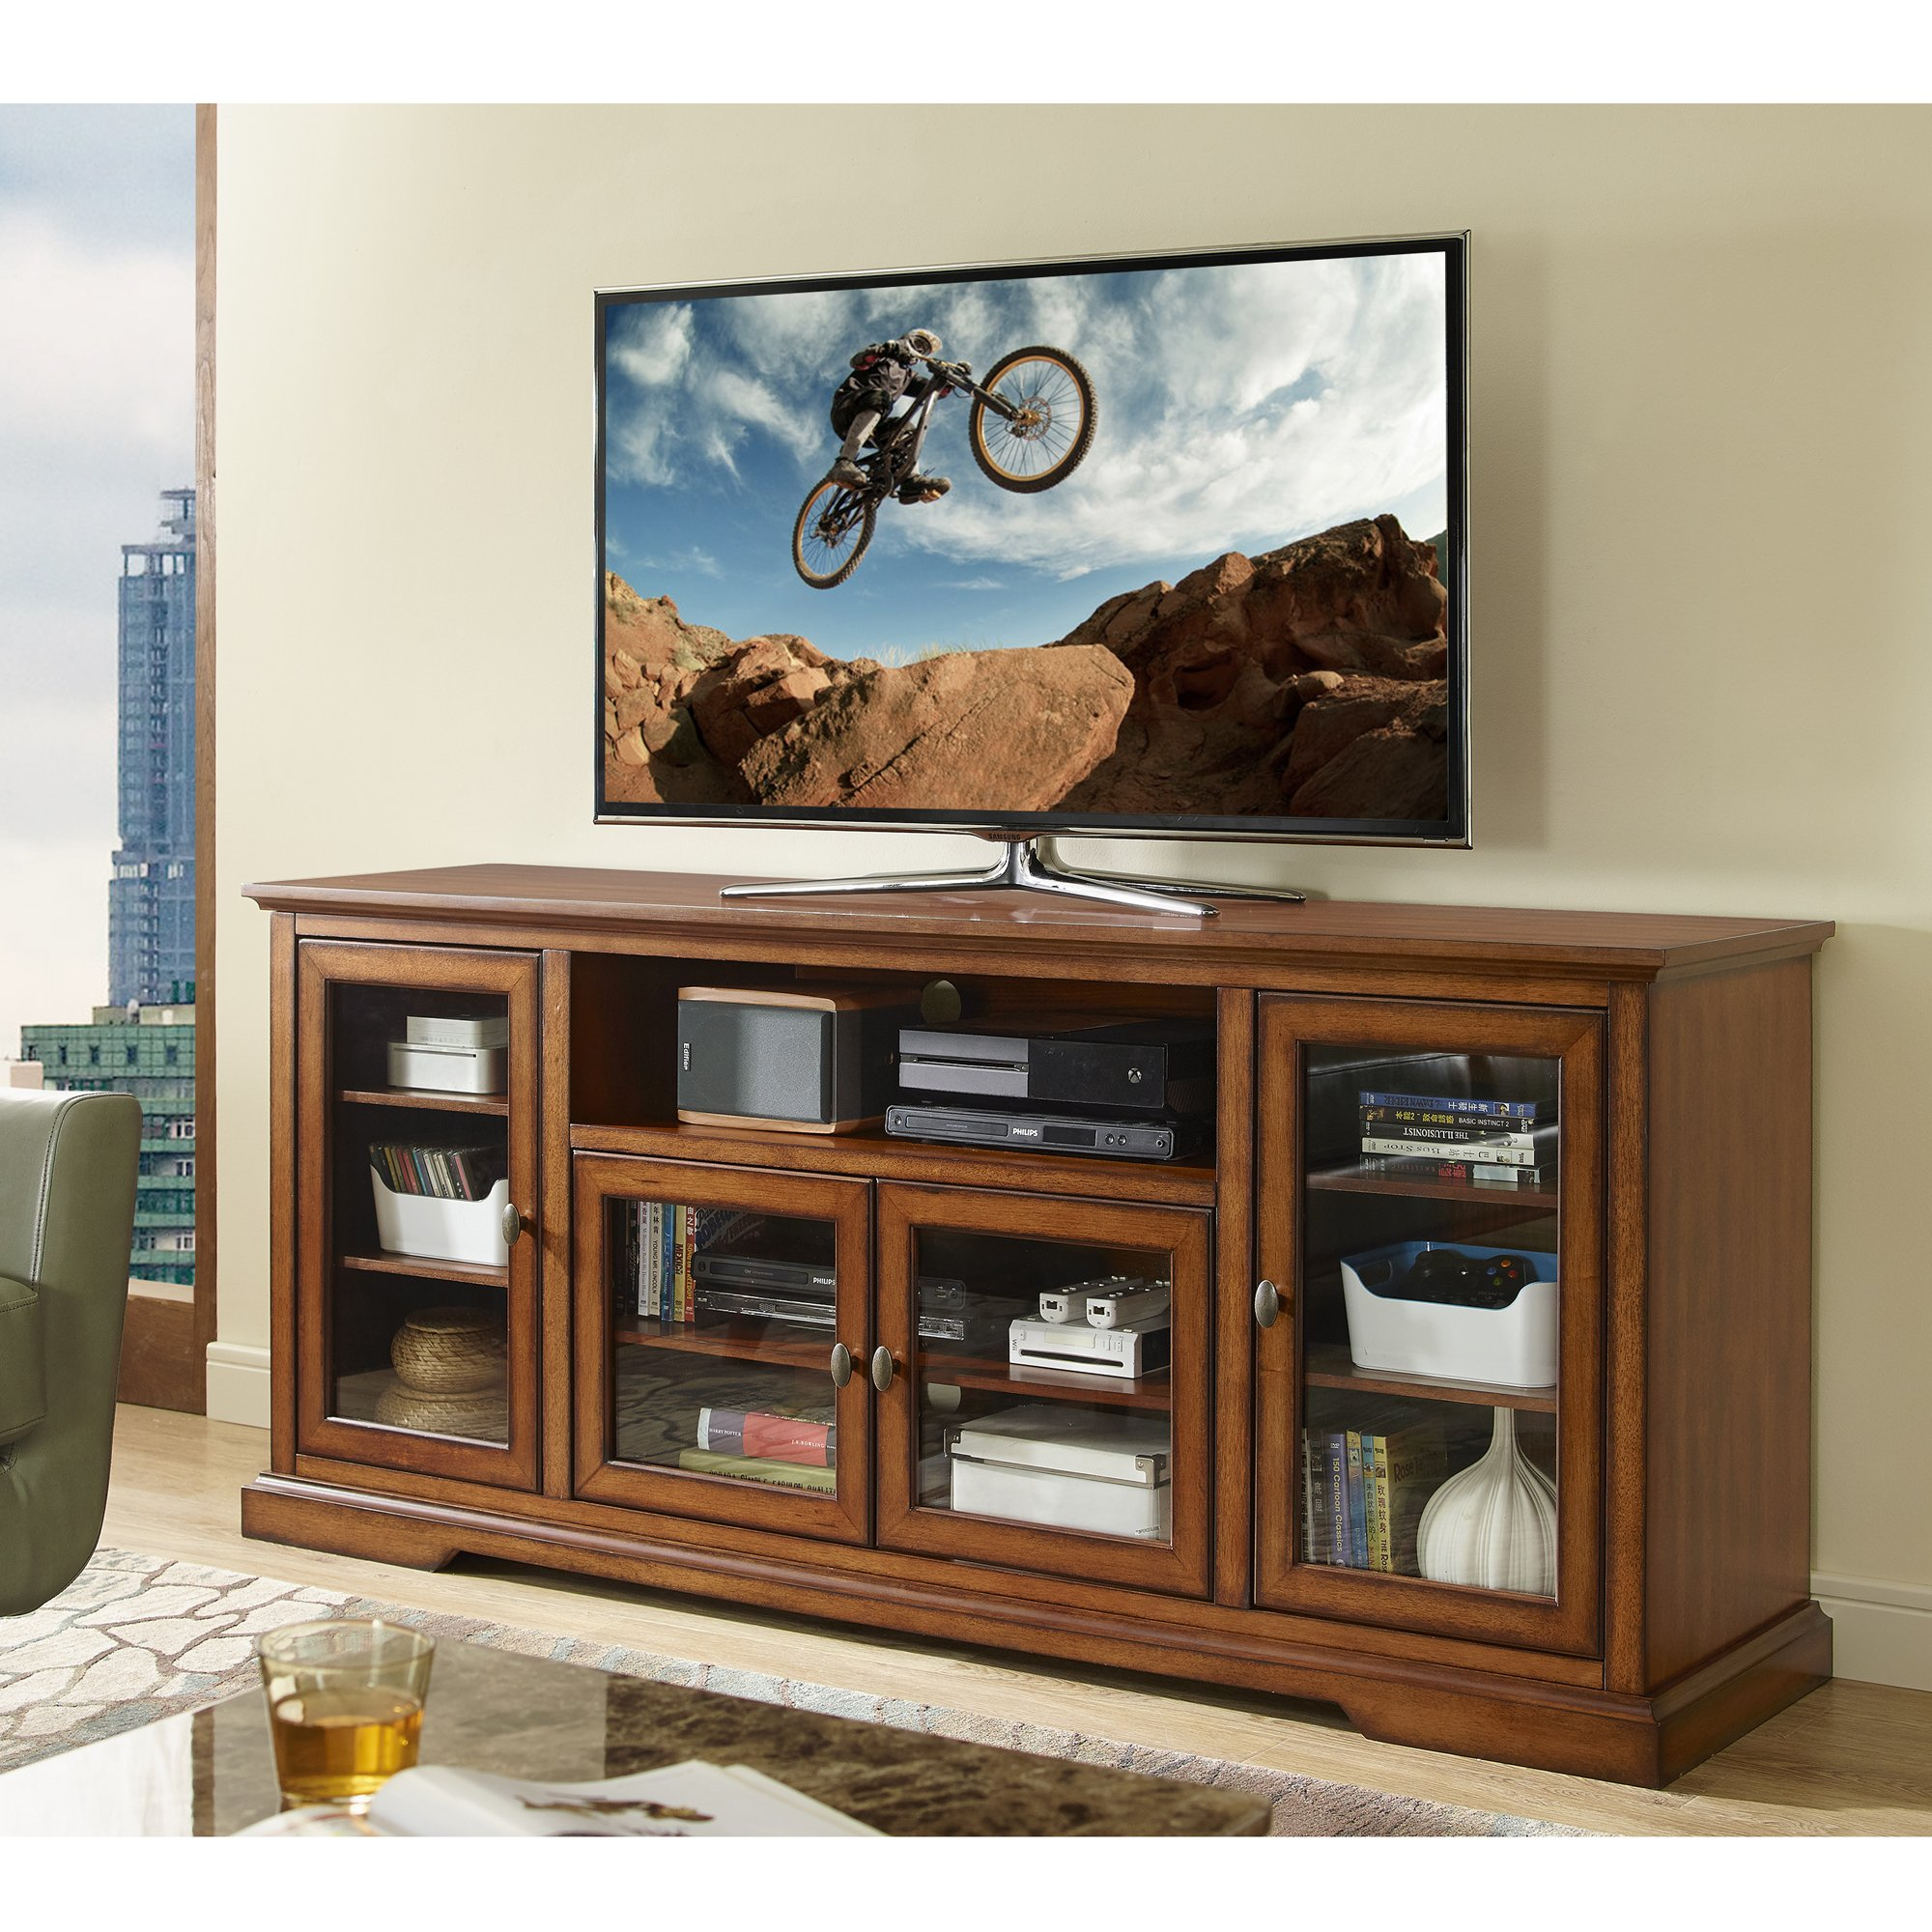 New 70 Inch Wide Highboy Style Wood Tv Stand-Rustic Brown Finish